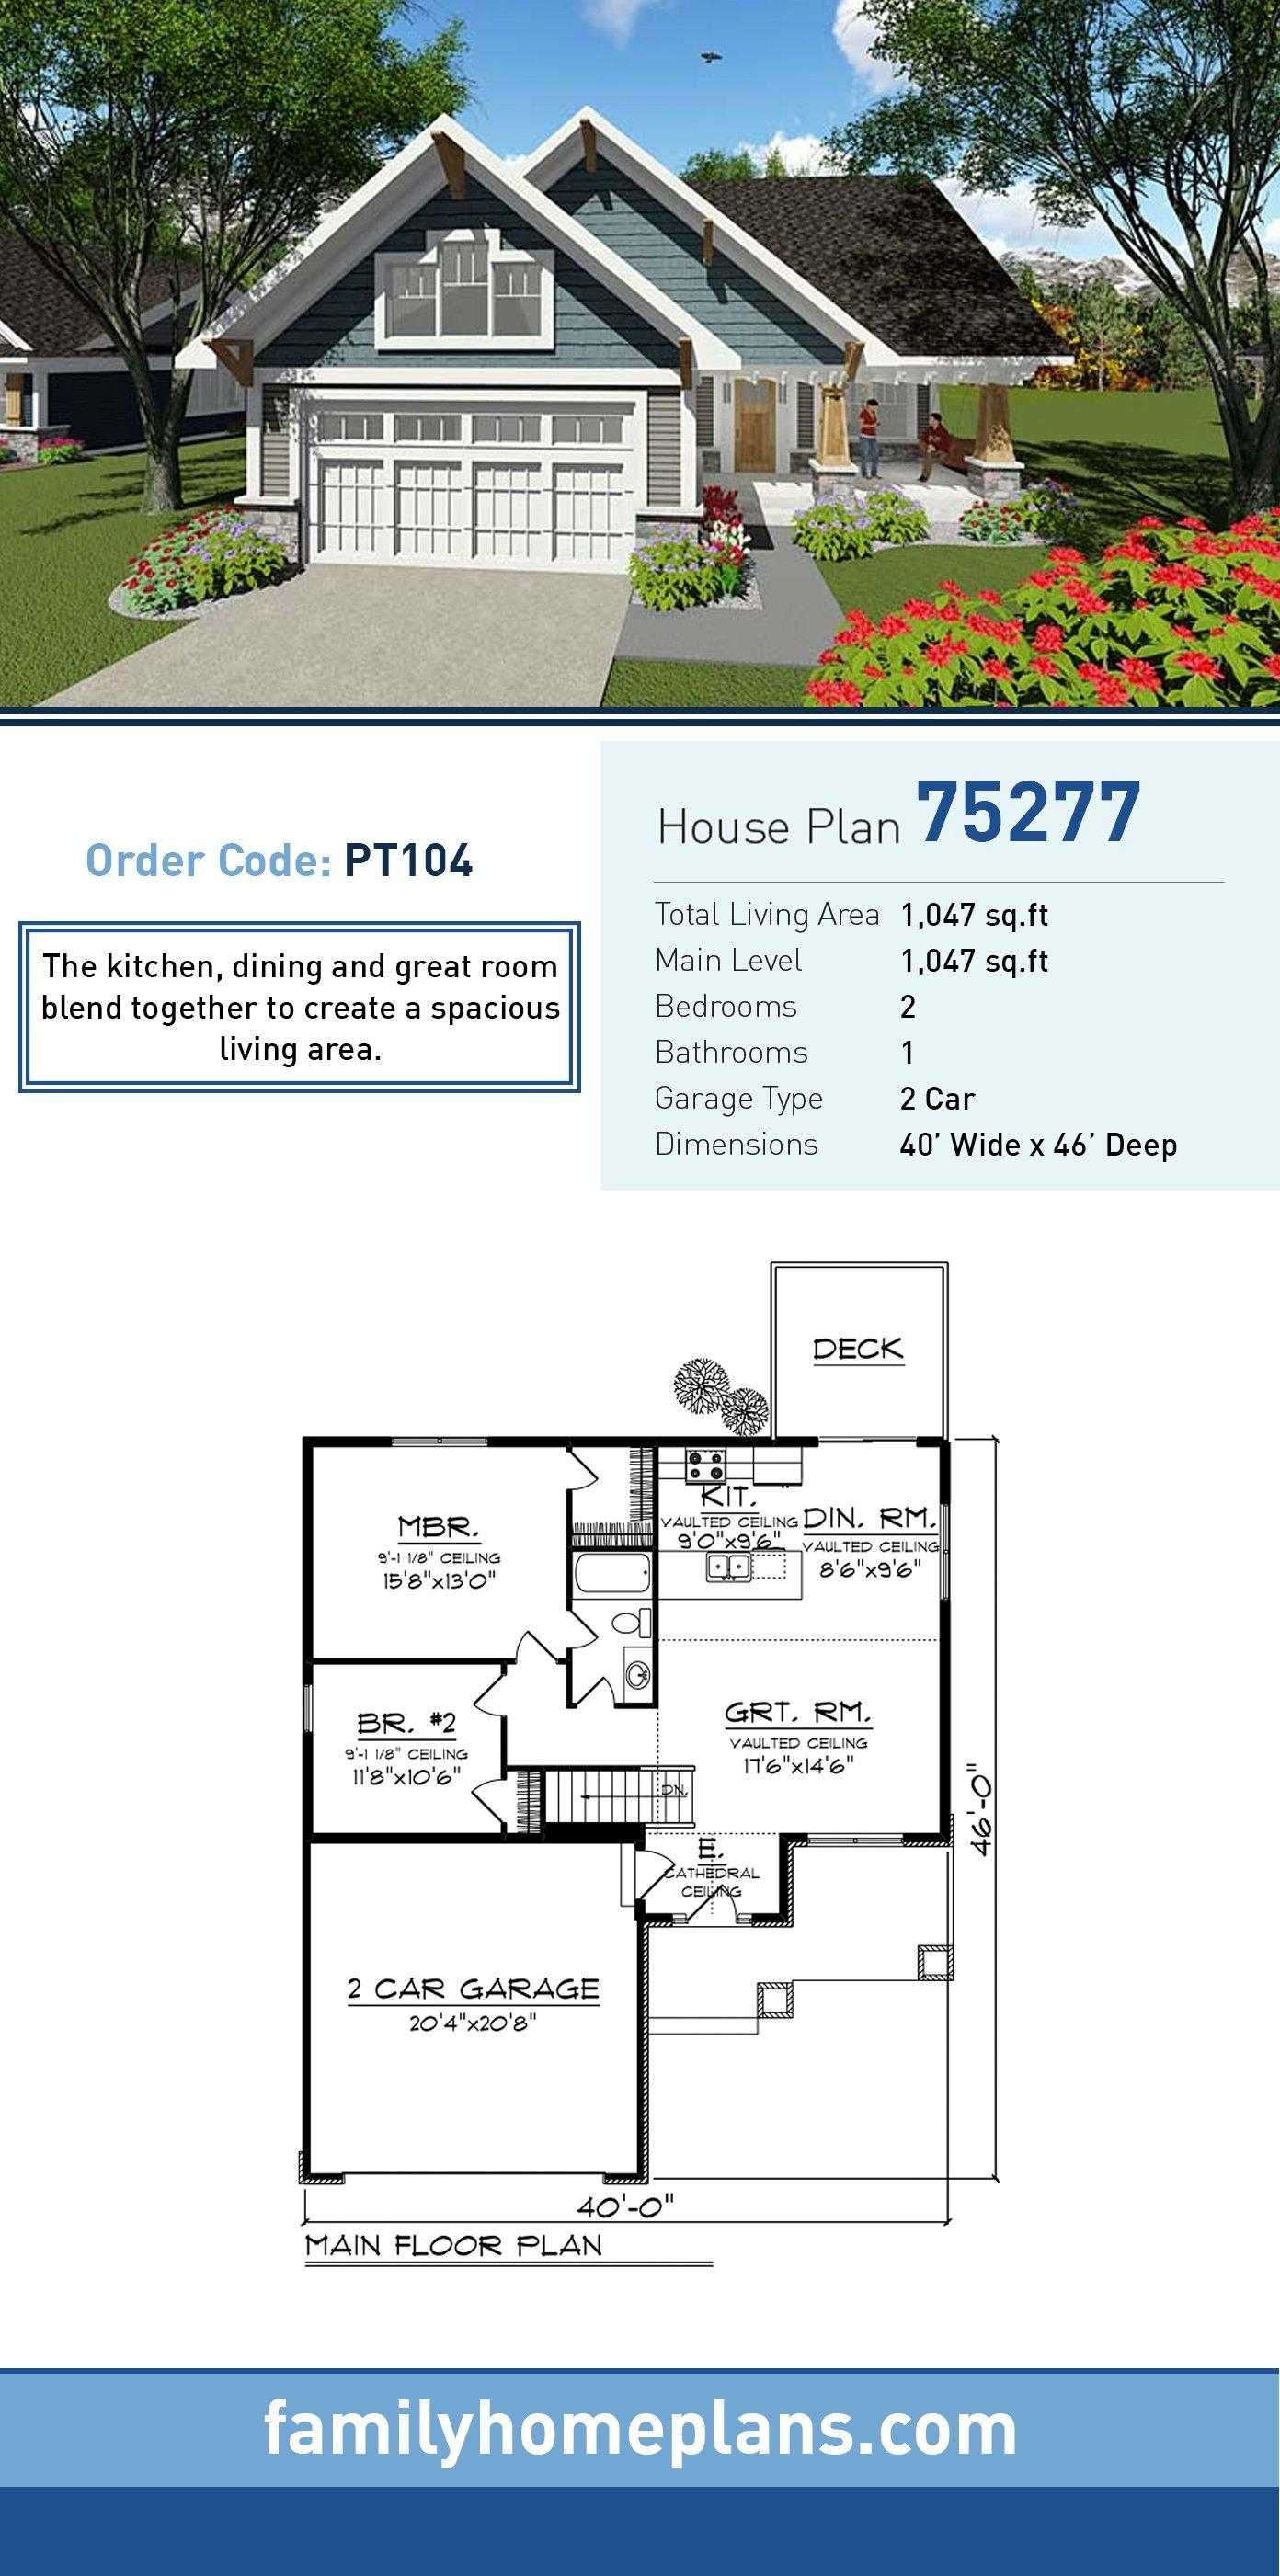 Bungalow, Cottage, Craftsman, Southern, Traditional House Plan 75277 with 2 Beds, 1 Baths, 2 Car Garage